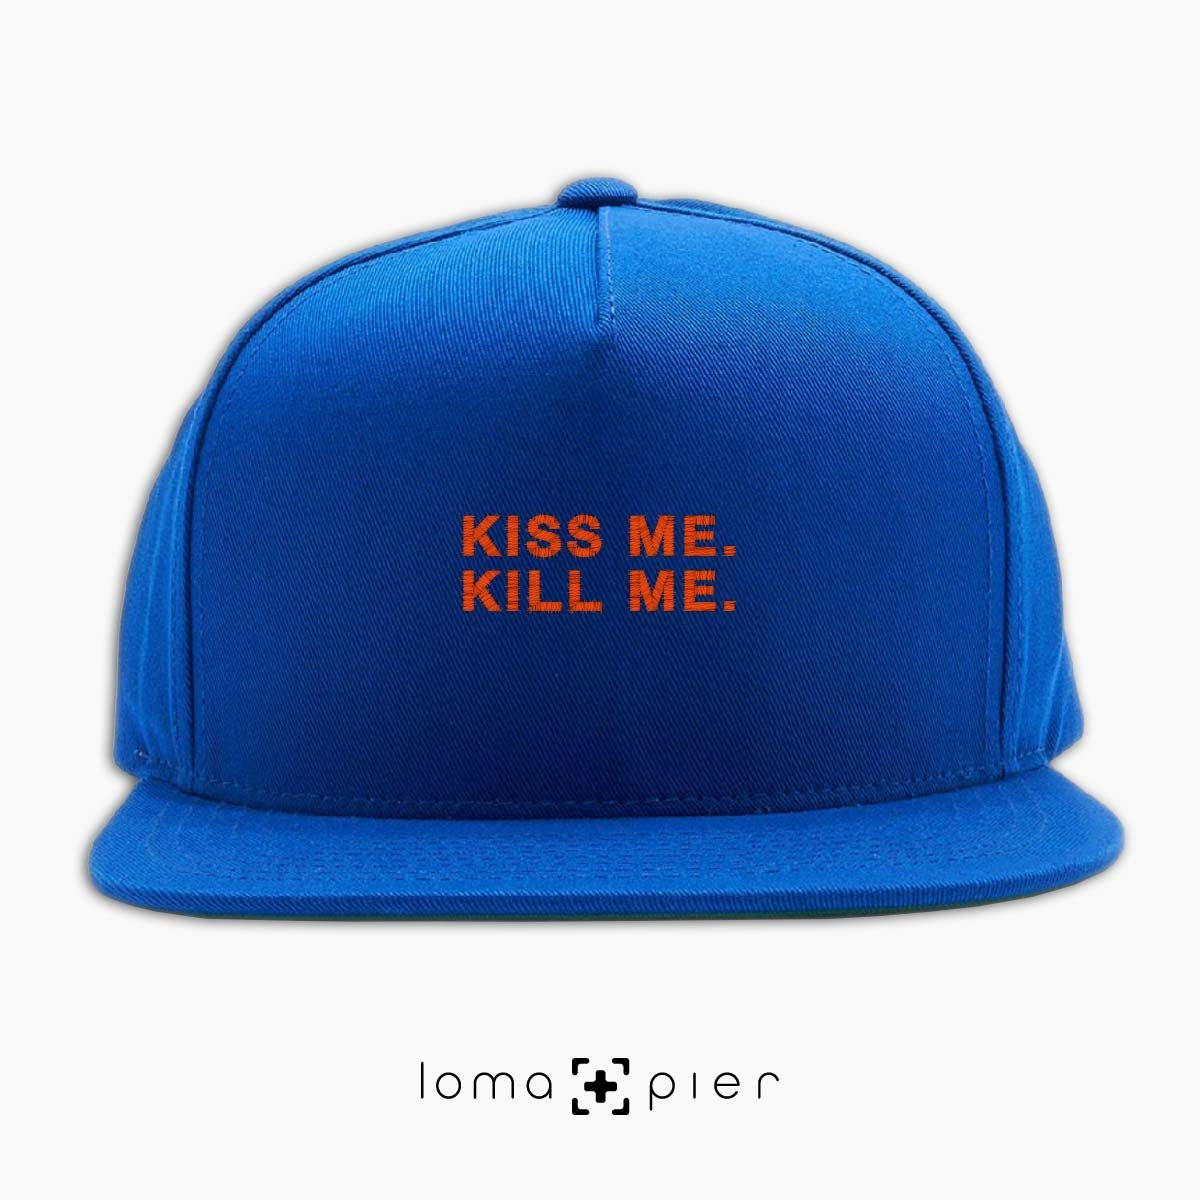 KISS ME. KILL ME. typography embroidered on a royal blue classic snapback hat with orange thread by loma+pier hat store